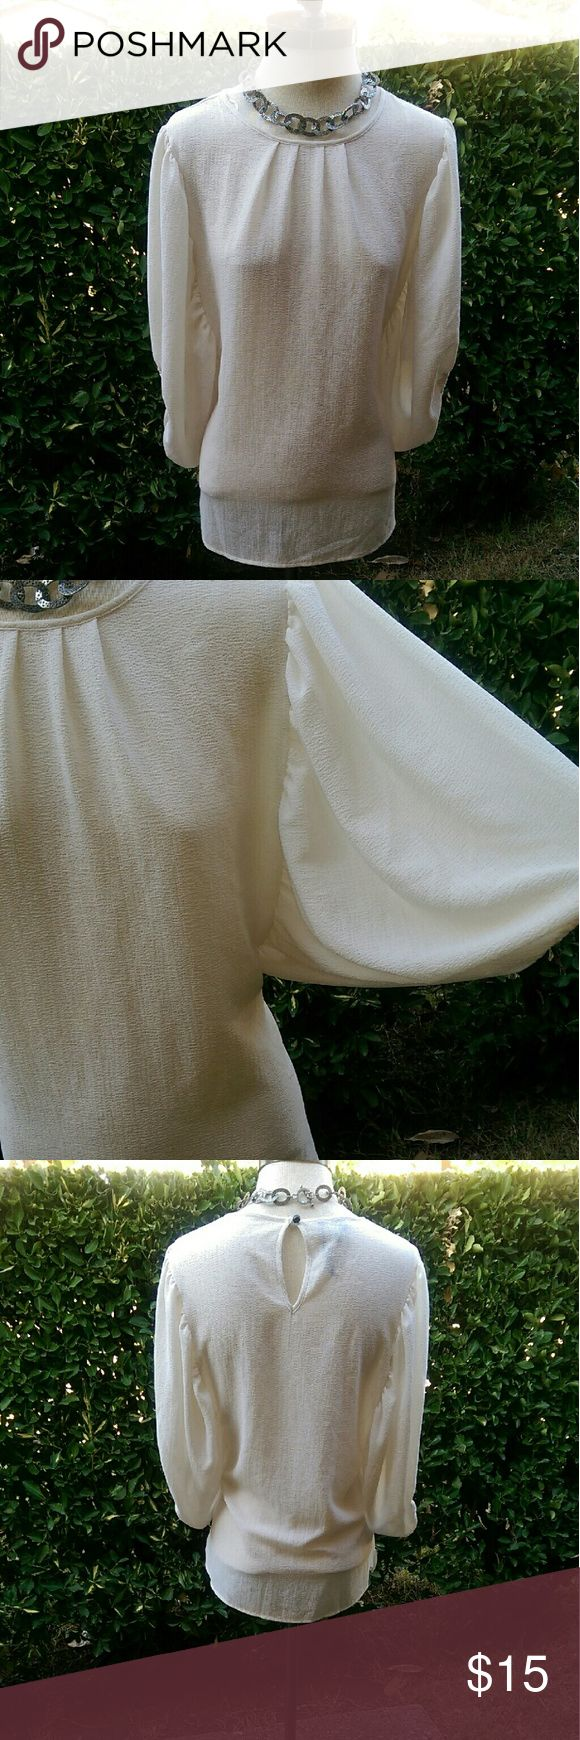 MNG Blouse Creme balloon arm blouse.  Great to pair with slacks or a nice pencil skirt. MNG by mango  Tops Blouses